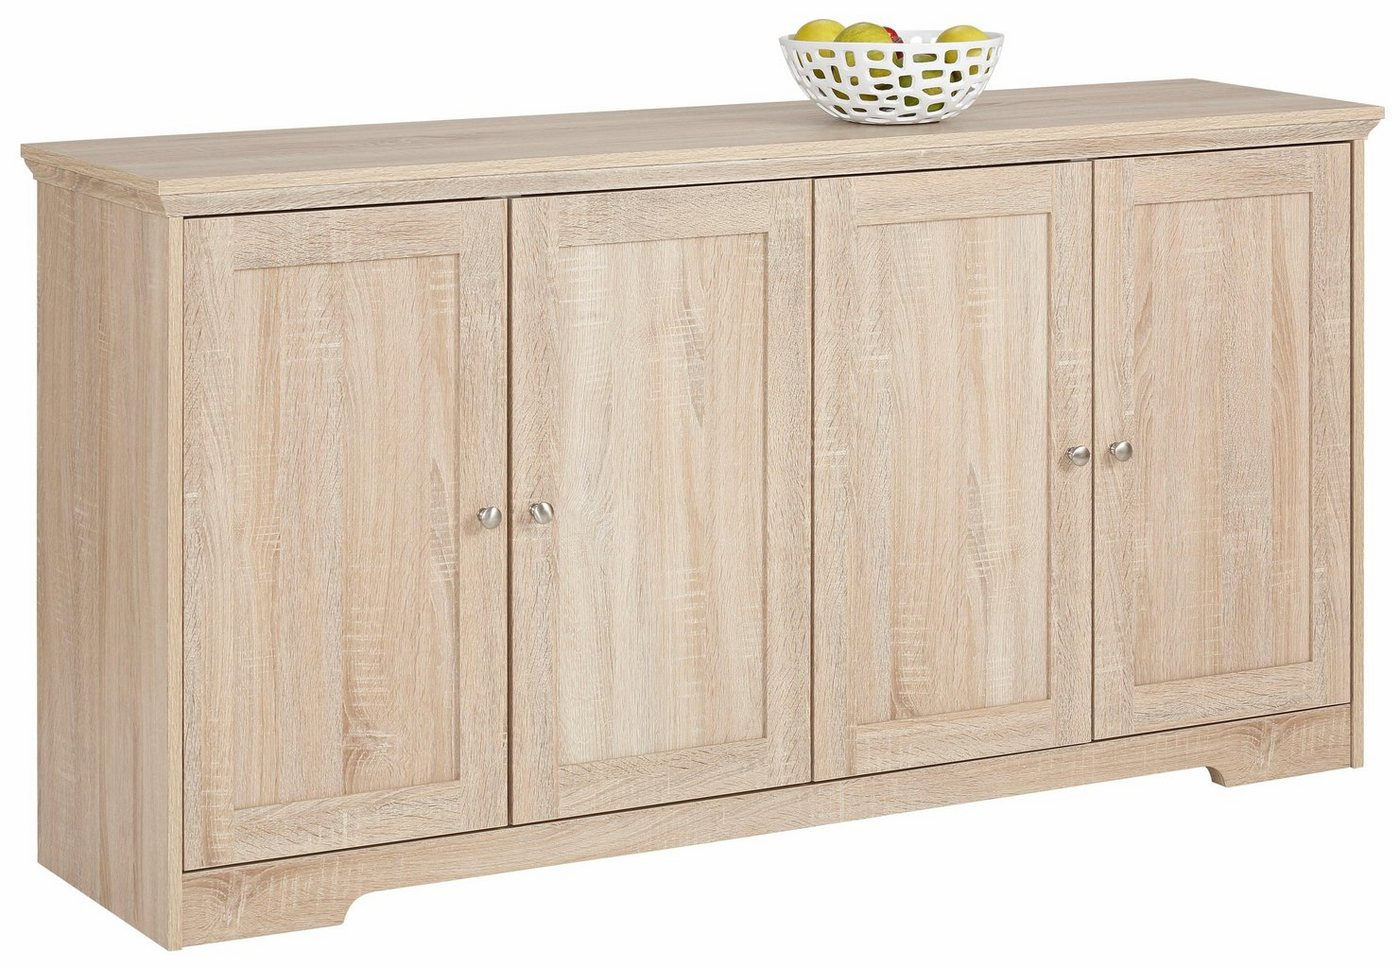 sonoma eiche sideboard weiss hochglanz preisvergleiche erfahrungsberichte und kauf bei nextag. Black Bedroom Furniture Sets. Home Design Ideas